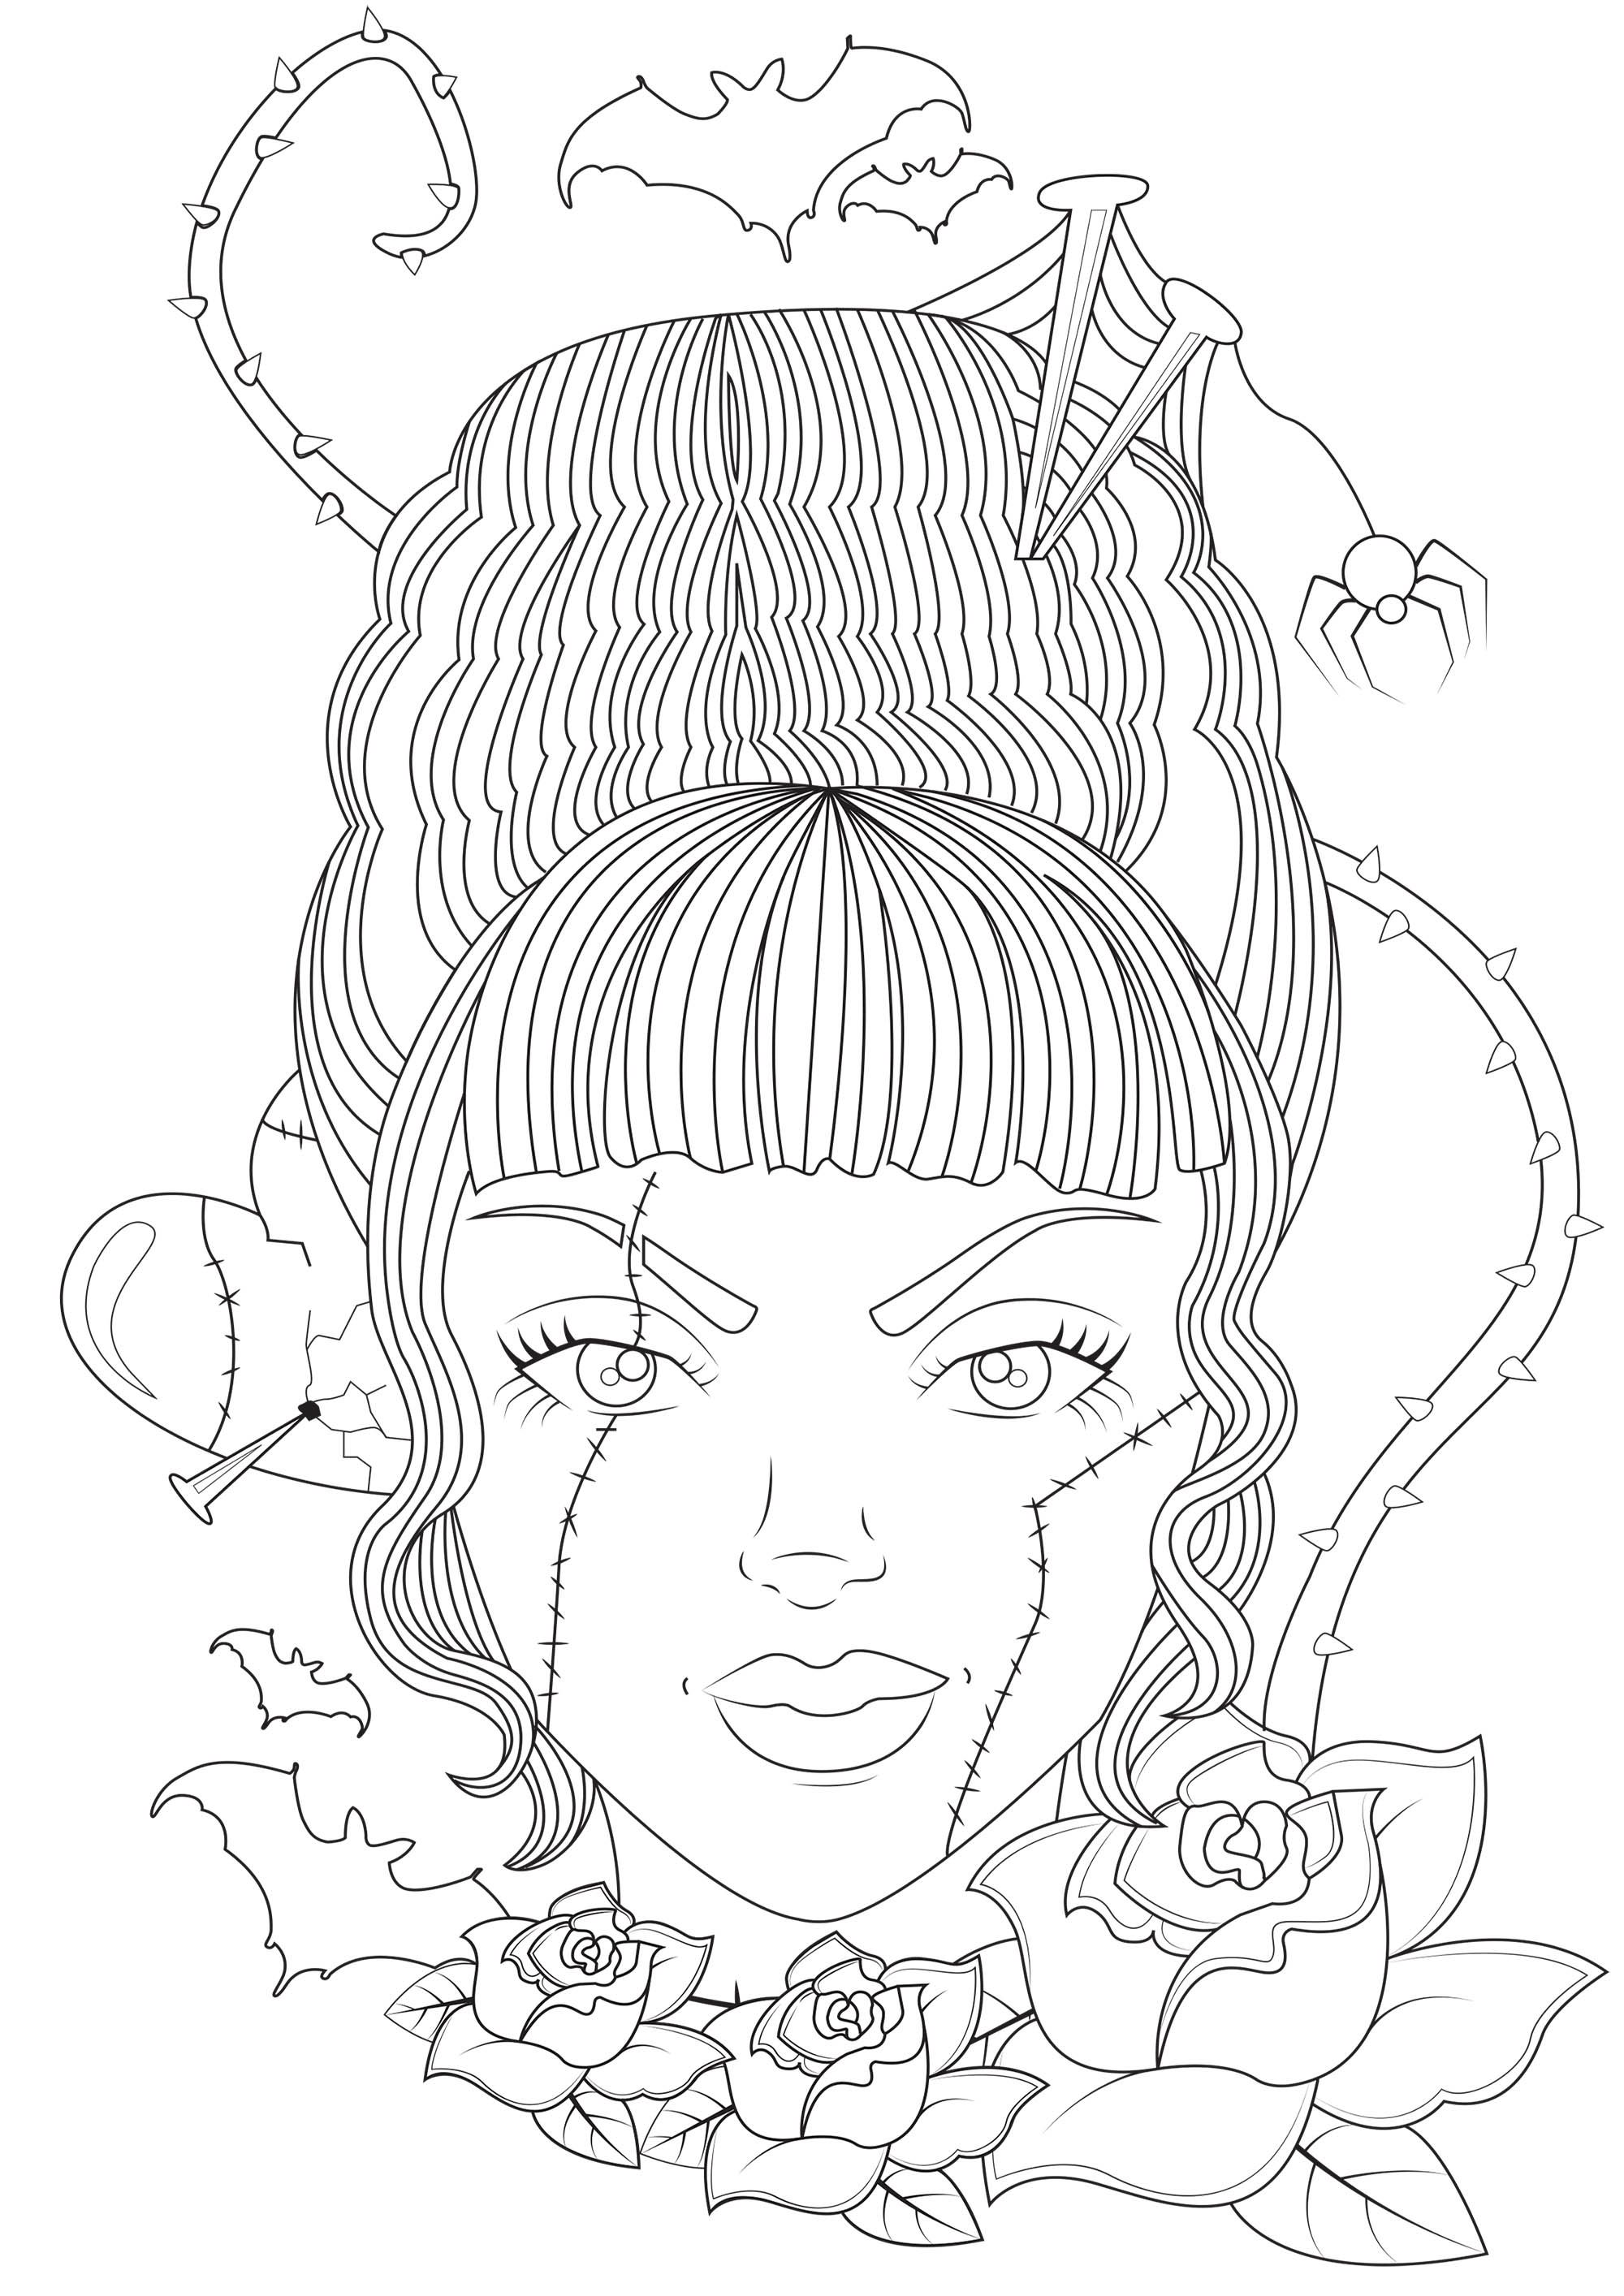 Coloring Page Inspired By Bride Of Frankenstein 1935 American Science Fiction Horror Film Coloring Pages Tattoo Coloring Book Tumblr Coloring Pages [ 2828 x 2000 Pixel ]